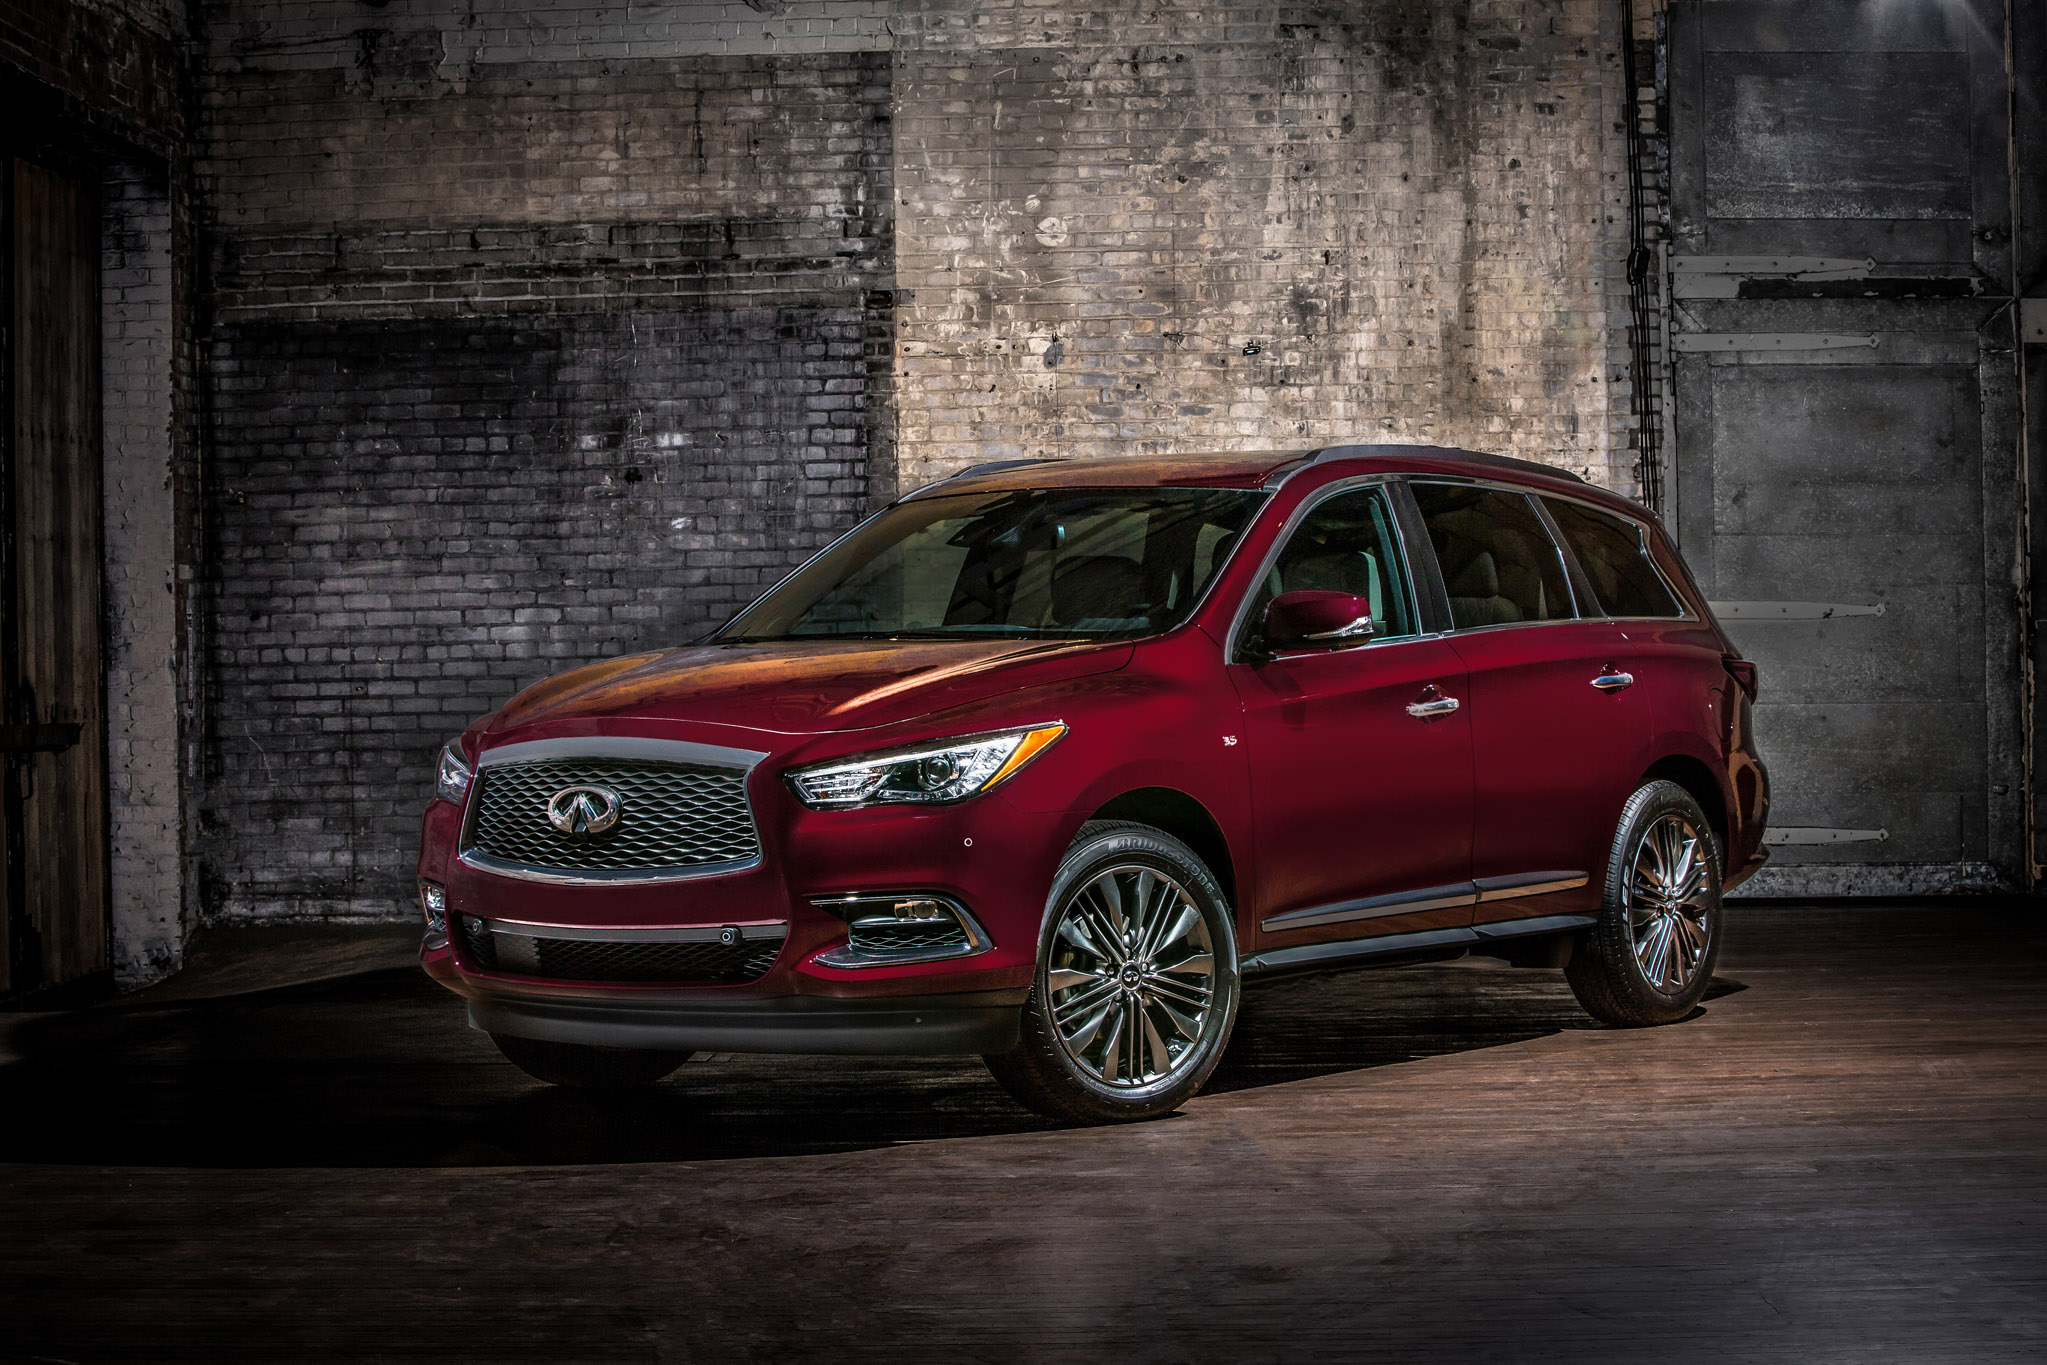 2019 Infiniti QX60 and QX80 Limited Editions Add Luxury ...